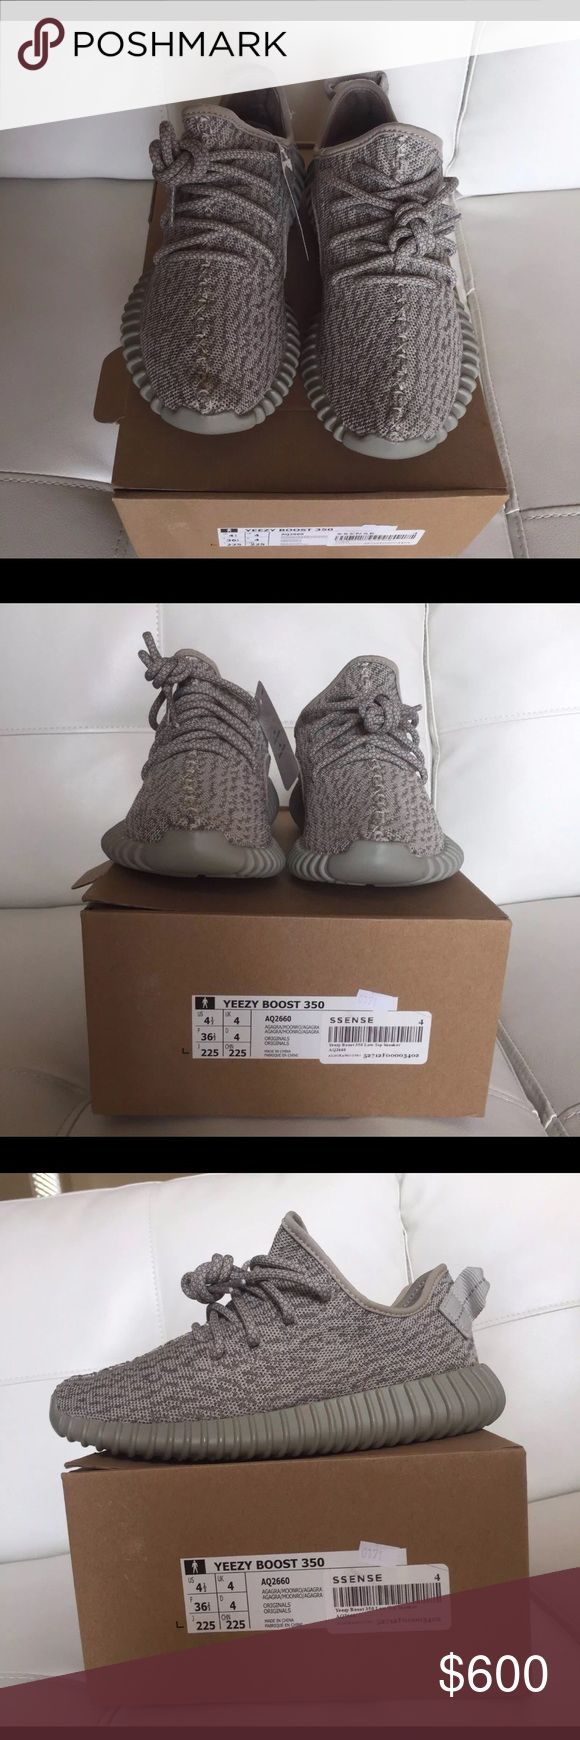 Yeezy Boost 350 MoonRock Authentic, comes with receipt and original everything Never even tried on. Sizes are limited. Price is negotiable text or call me 248-923-6076. Follow me on instagram sneakericon_ adidas Shoes Sneakers